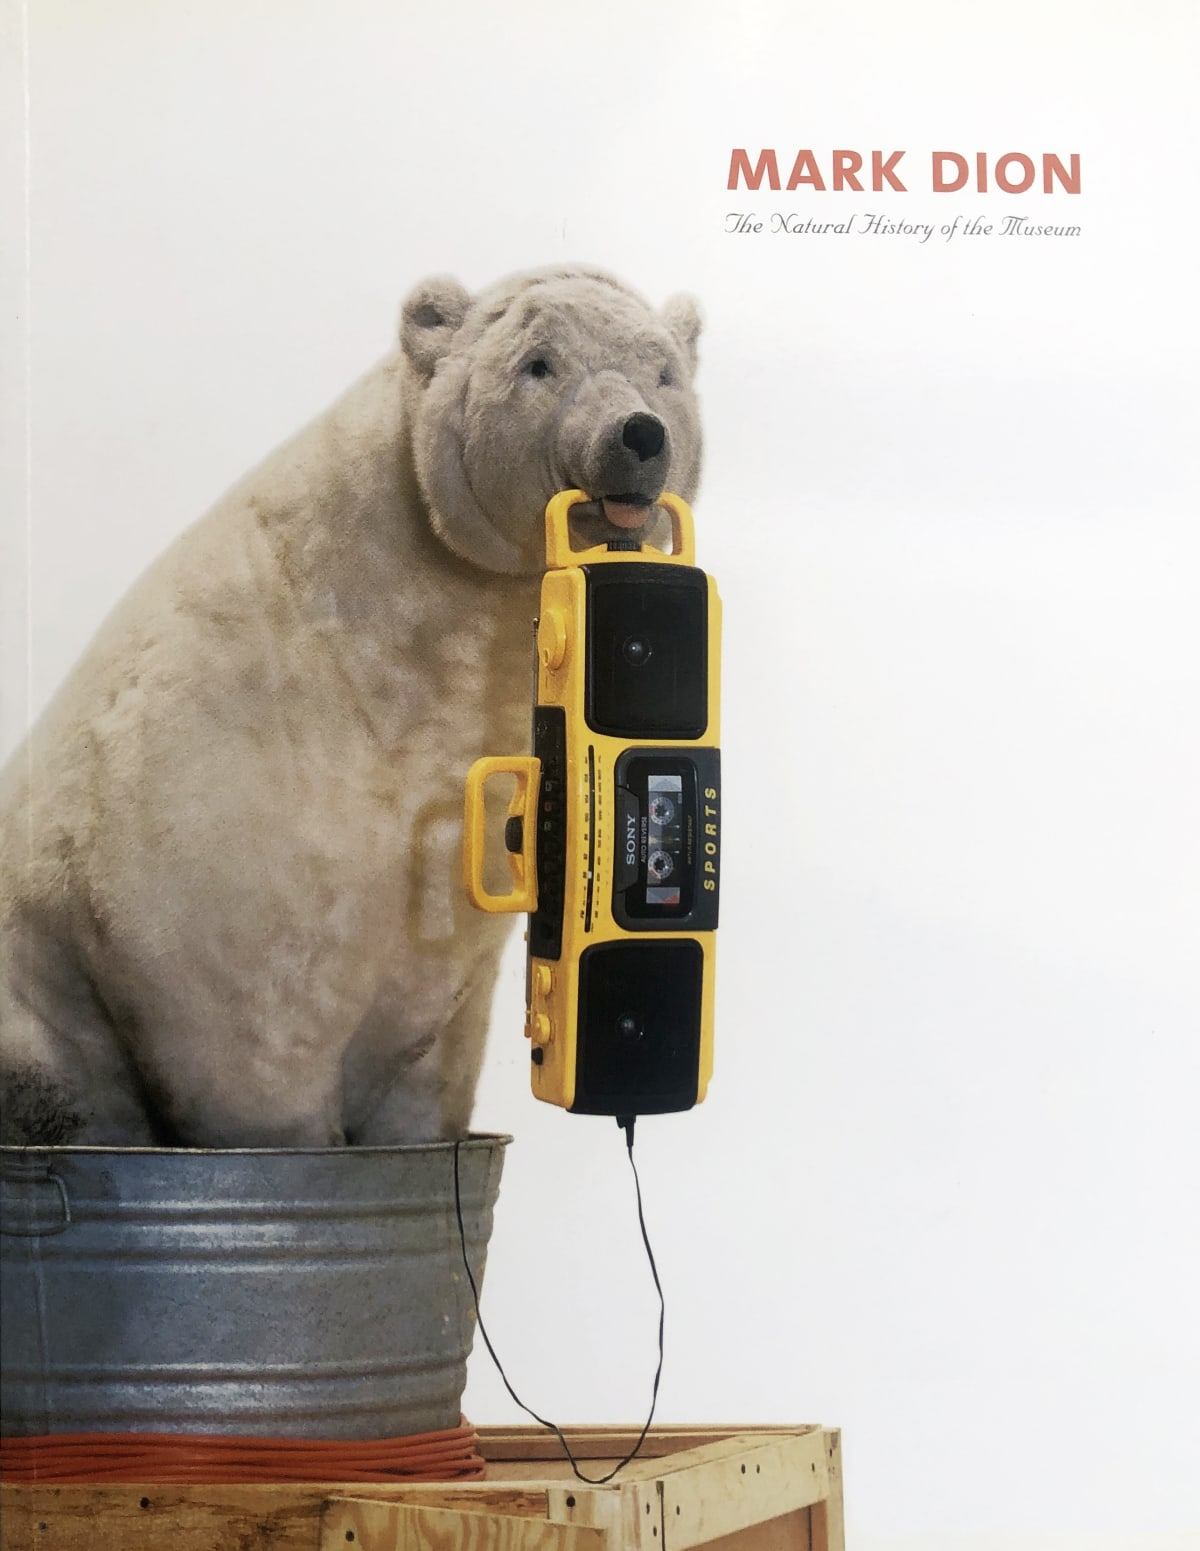 "Exhibition catalogue cover for Mark Dion exhibition. Photo of a toy stuffed polar bear sitting in a tin bucket and holding a boom box in its mouth. Title text: ""Mark Dion, The Natural History of the Museum"""